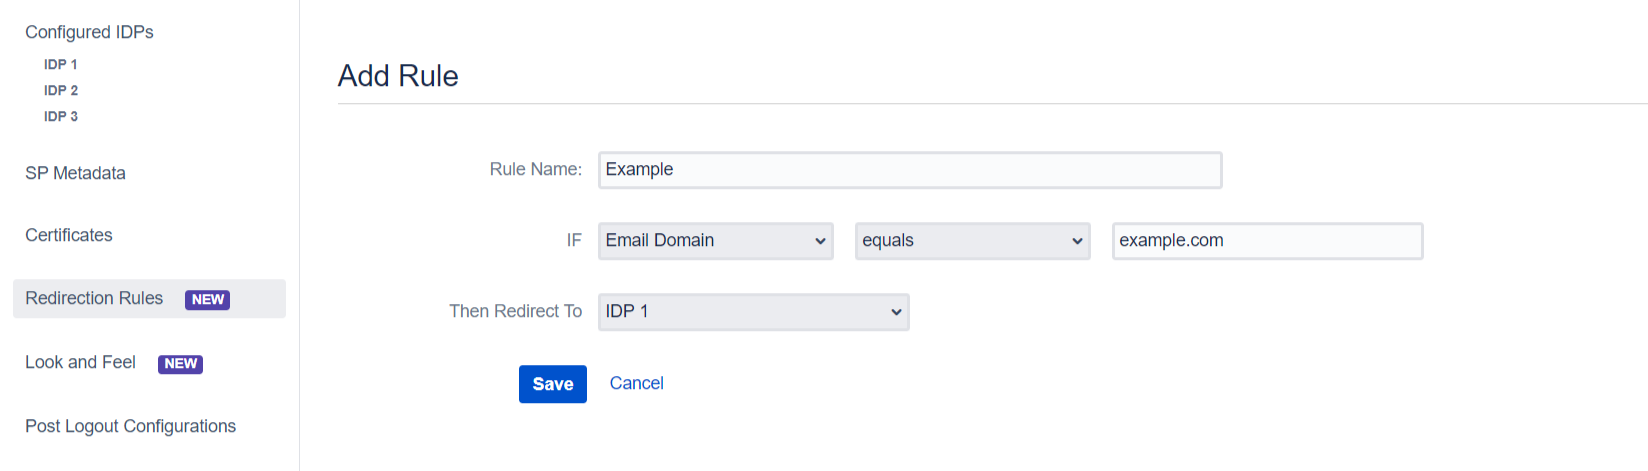 SAML Single Sign On (SSO) into Jira, example rule